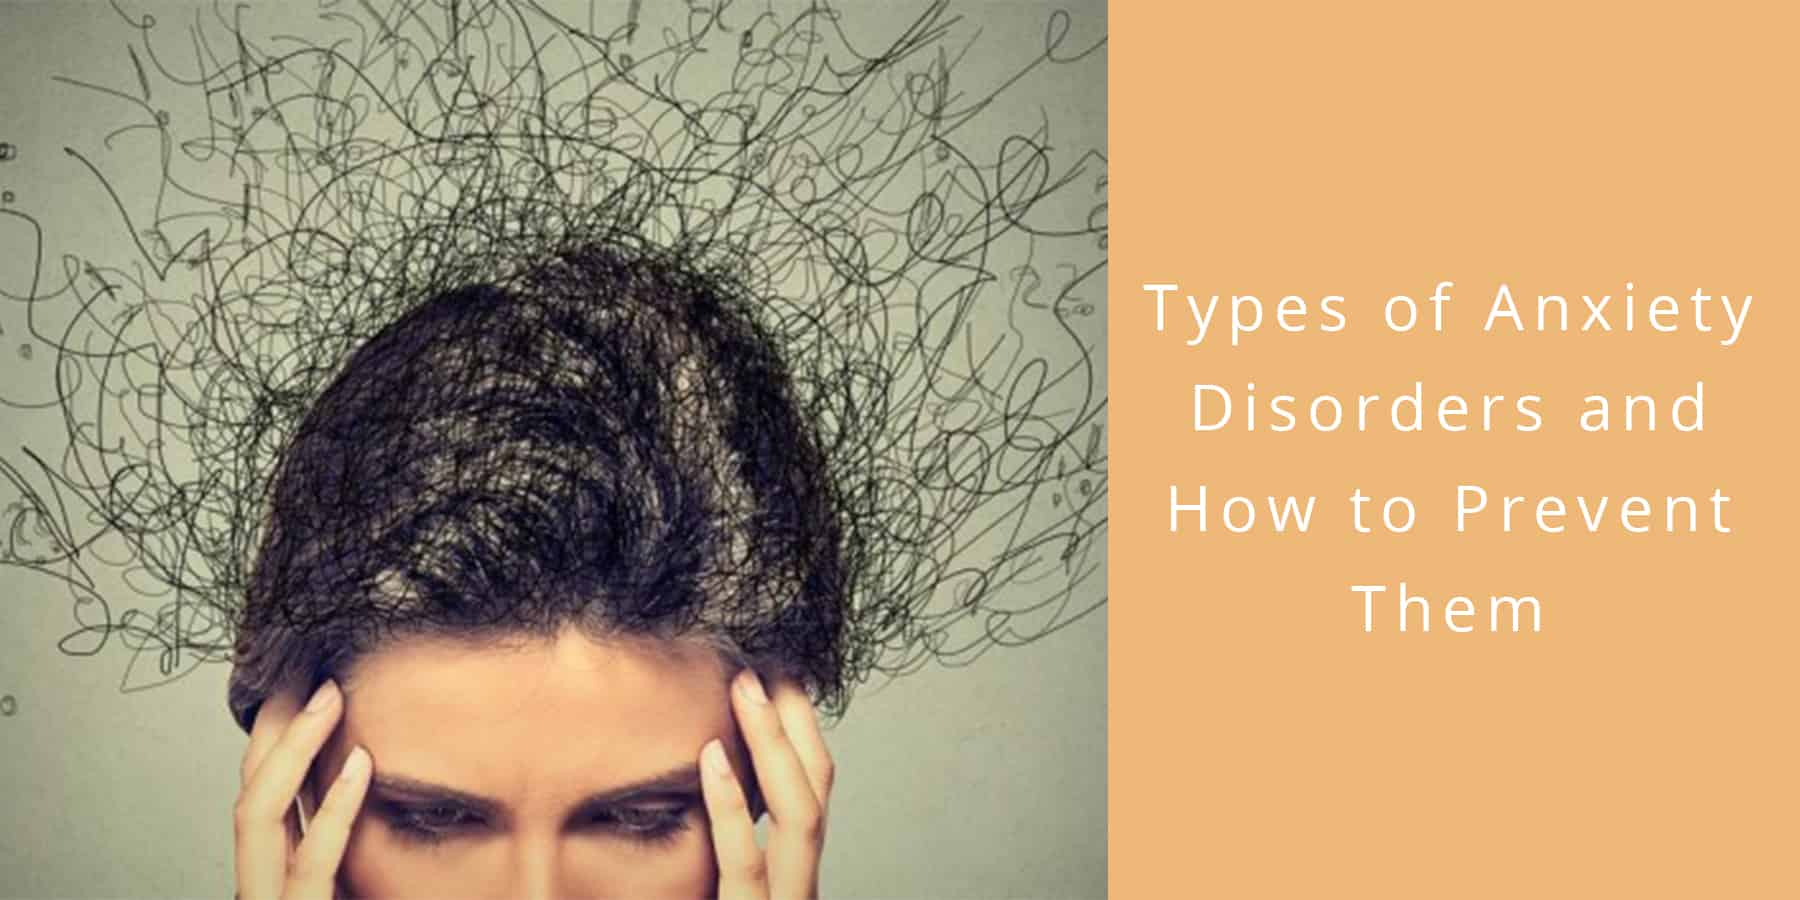 Types of Anxiety Disorders and How to Prevent Them